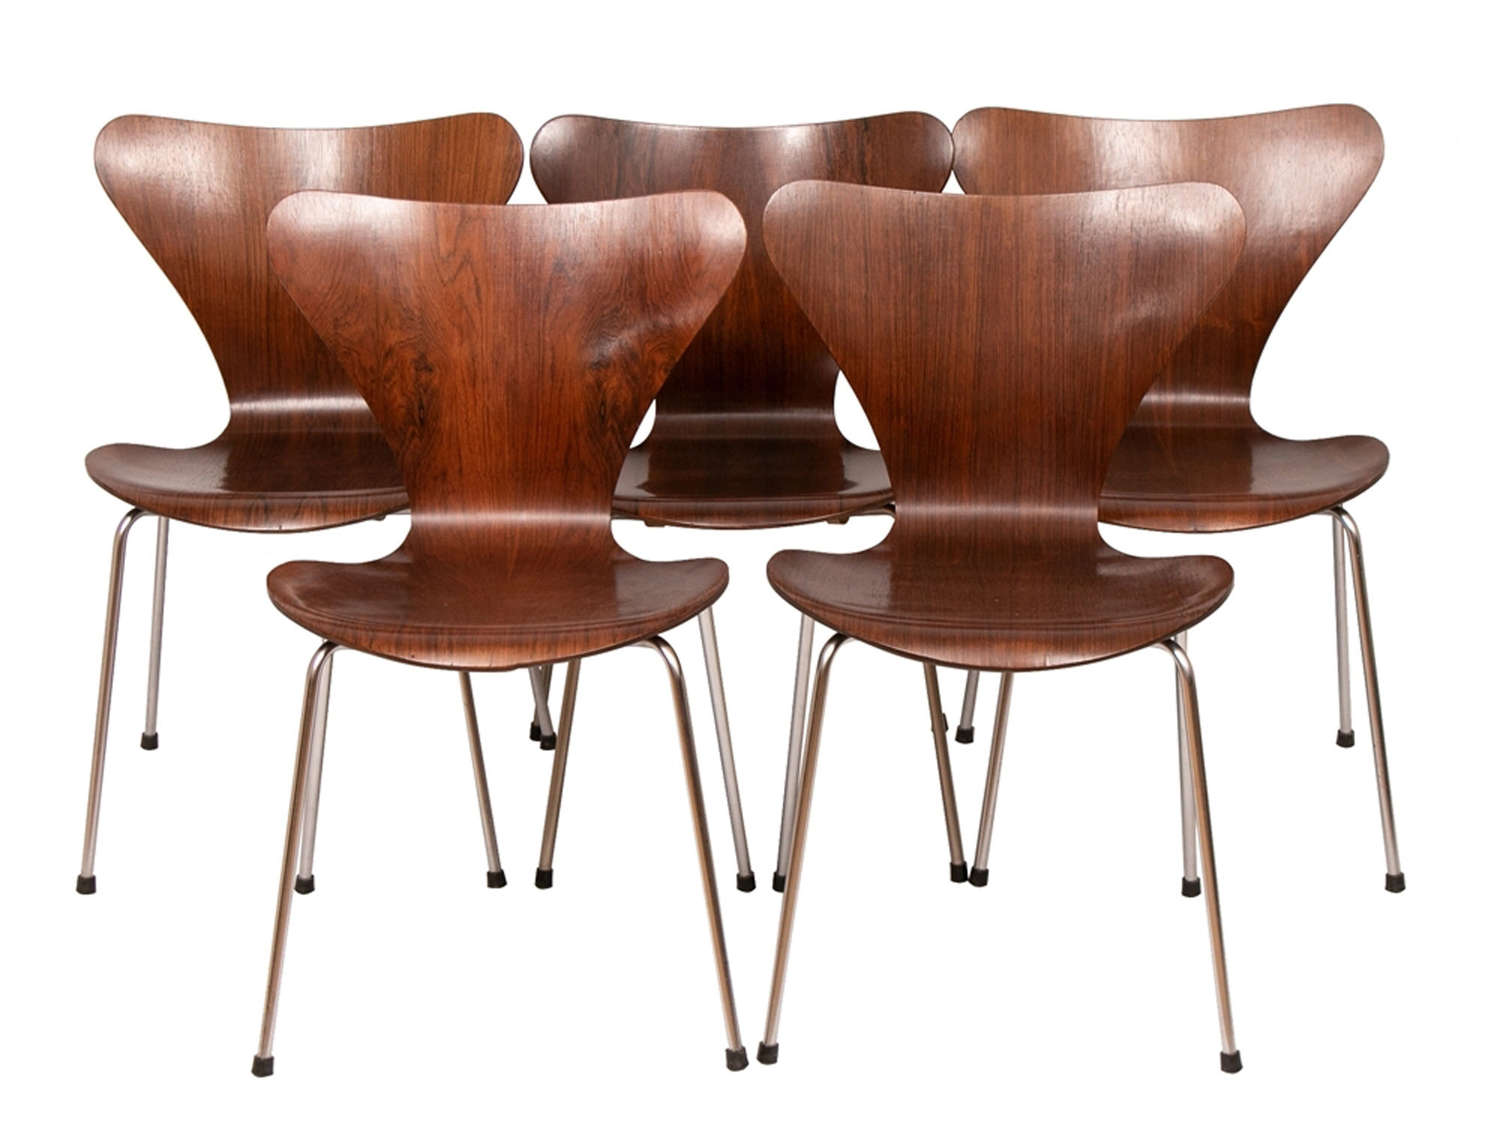 Set of 5 Series 7 Model 3107 Rosewood Chairs by Arne Jacobsen c.1960